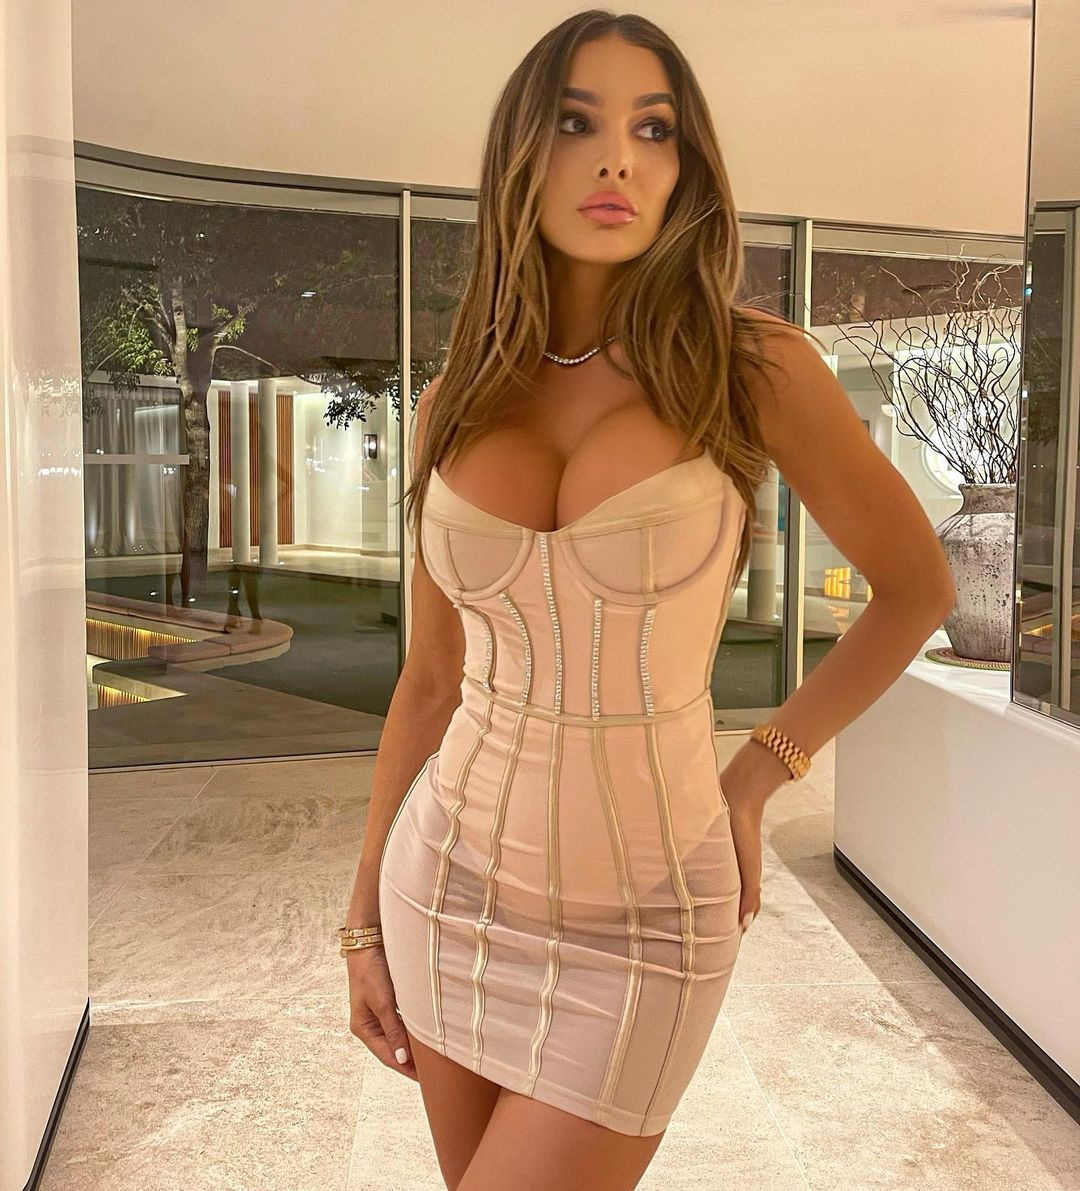 Lyna Perez Biography Daughter Net Worth Instagram Modeling 7